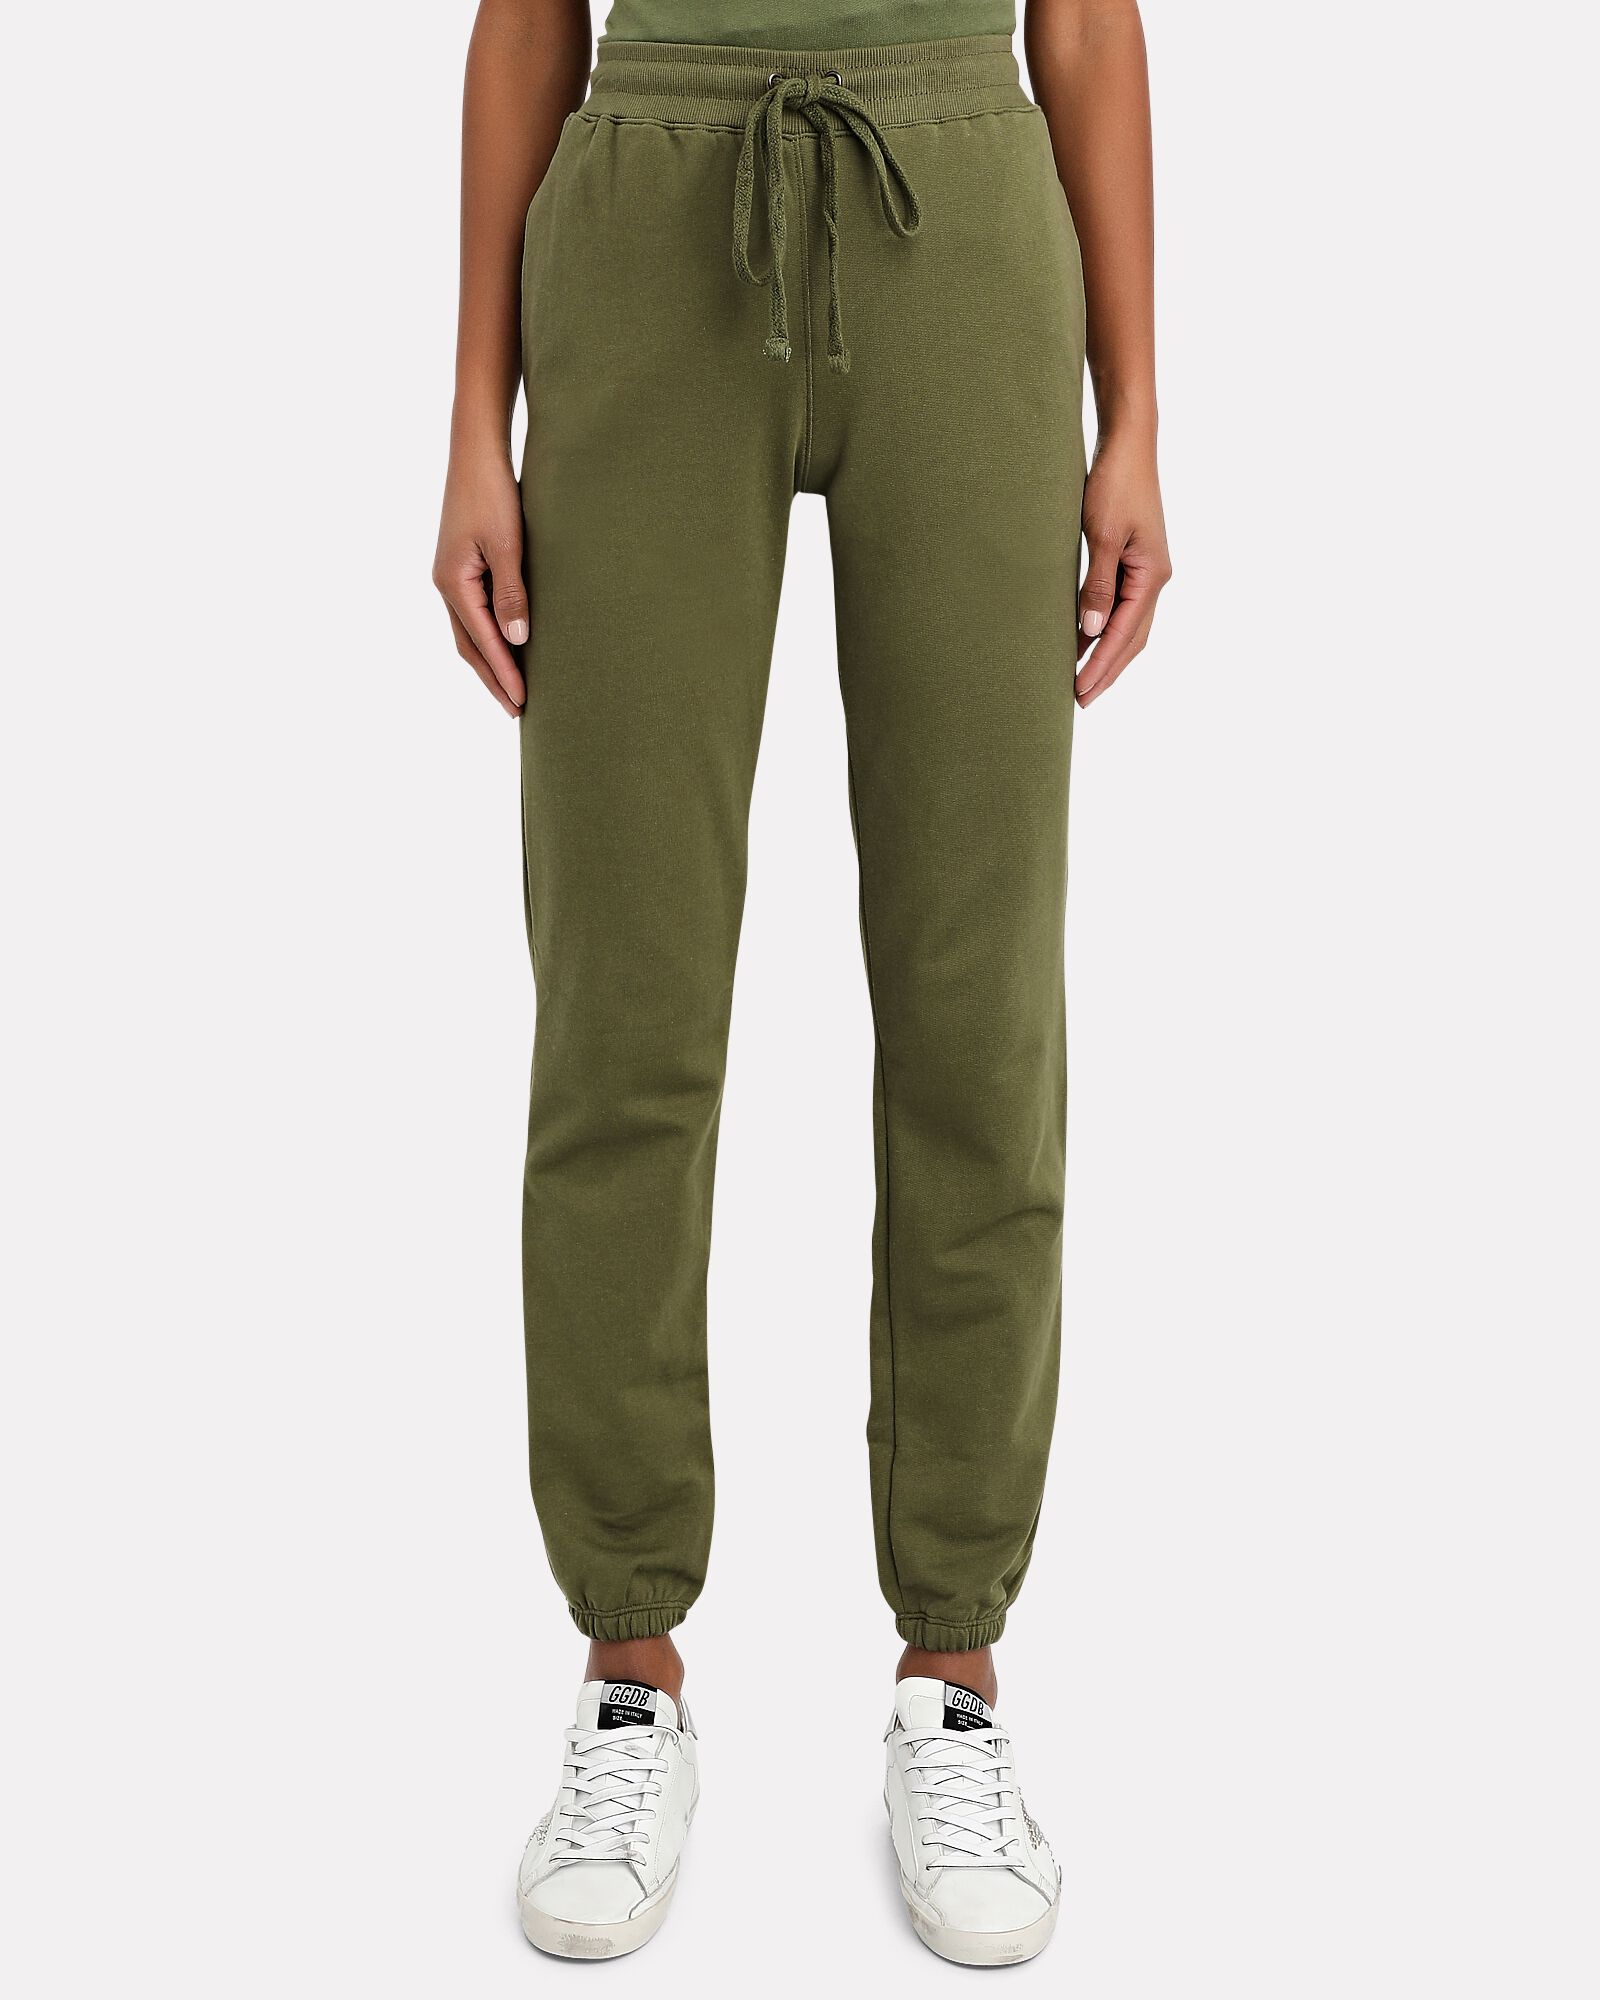 Pima Cotton Terry Joggers, OLIVE/ARMY, hi-res